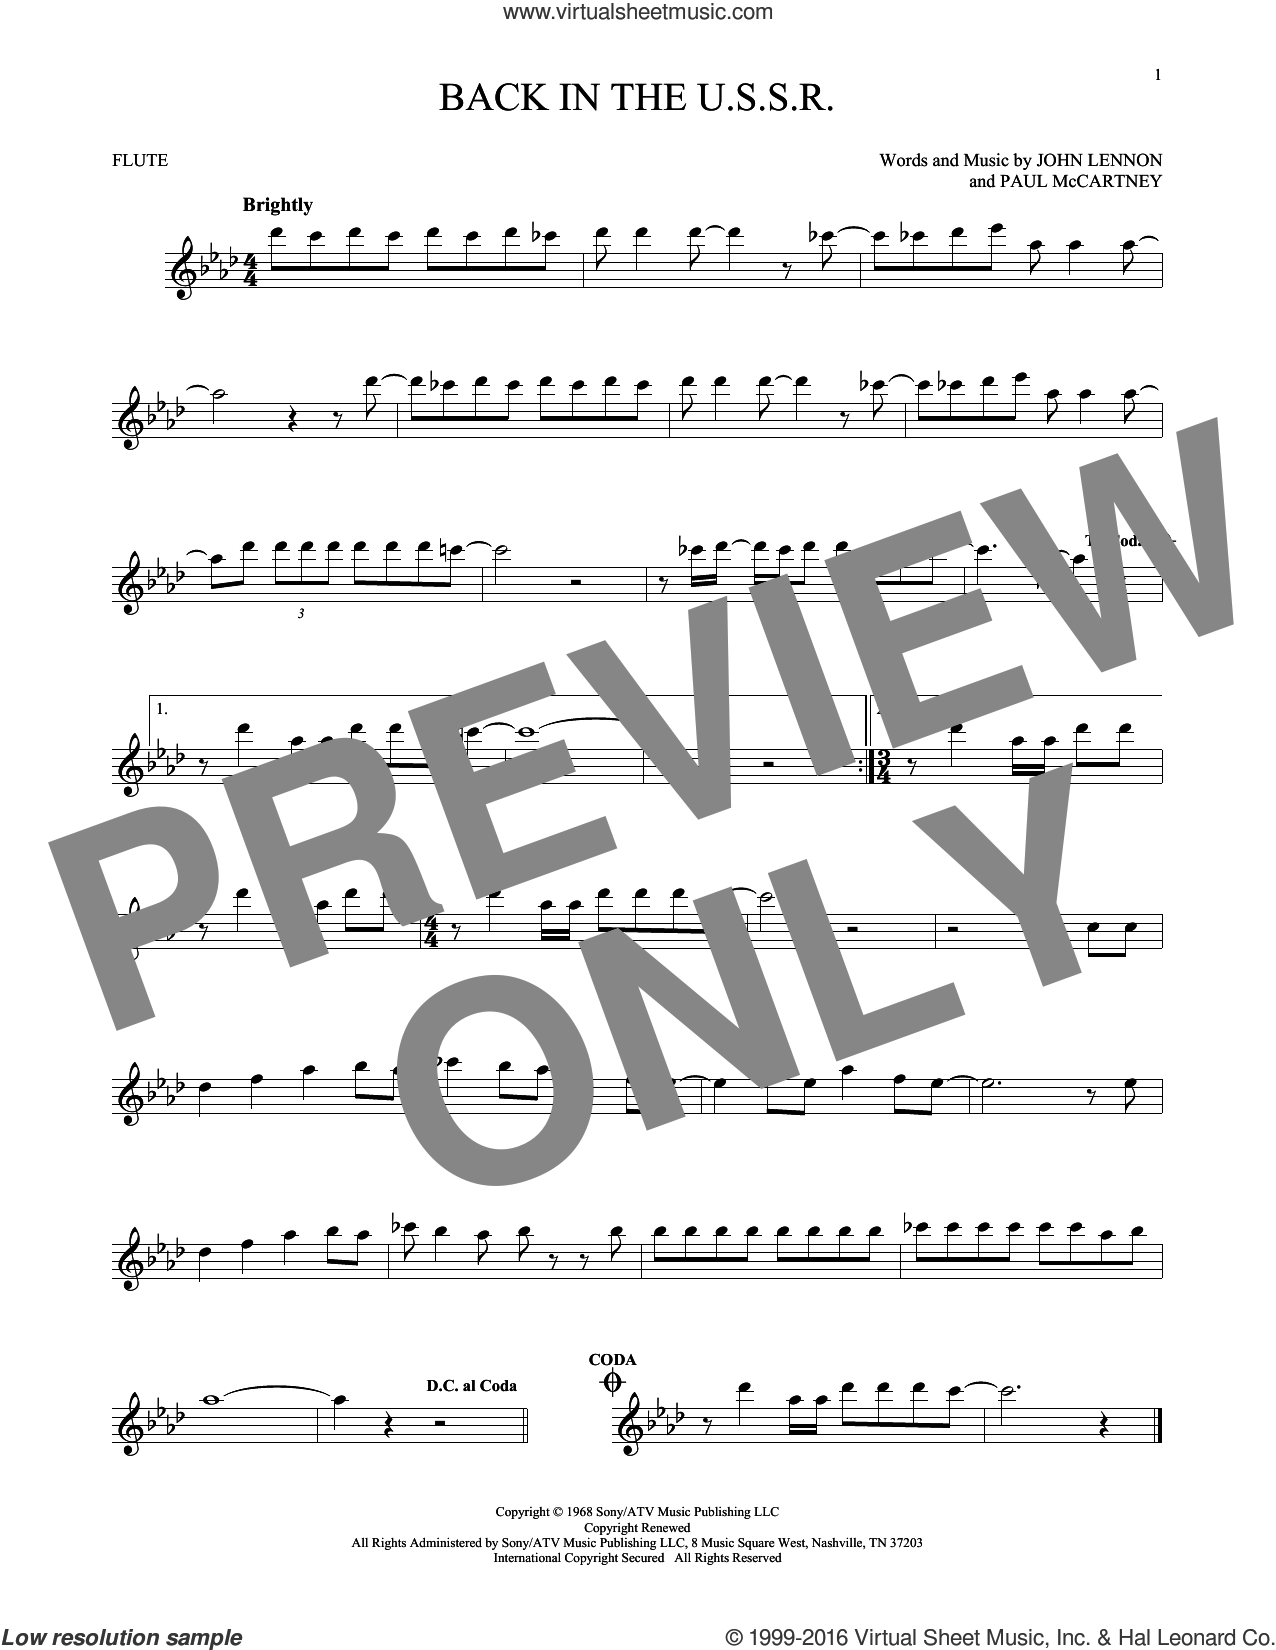 Back In The U.S.S.R. sheet music for flute solo by The Beatles, John Lennon and Paul McCartney, intermediate skill level